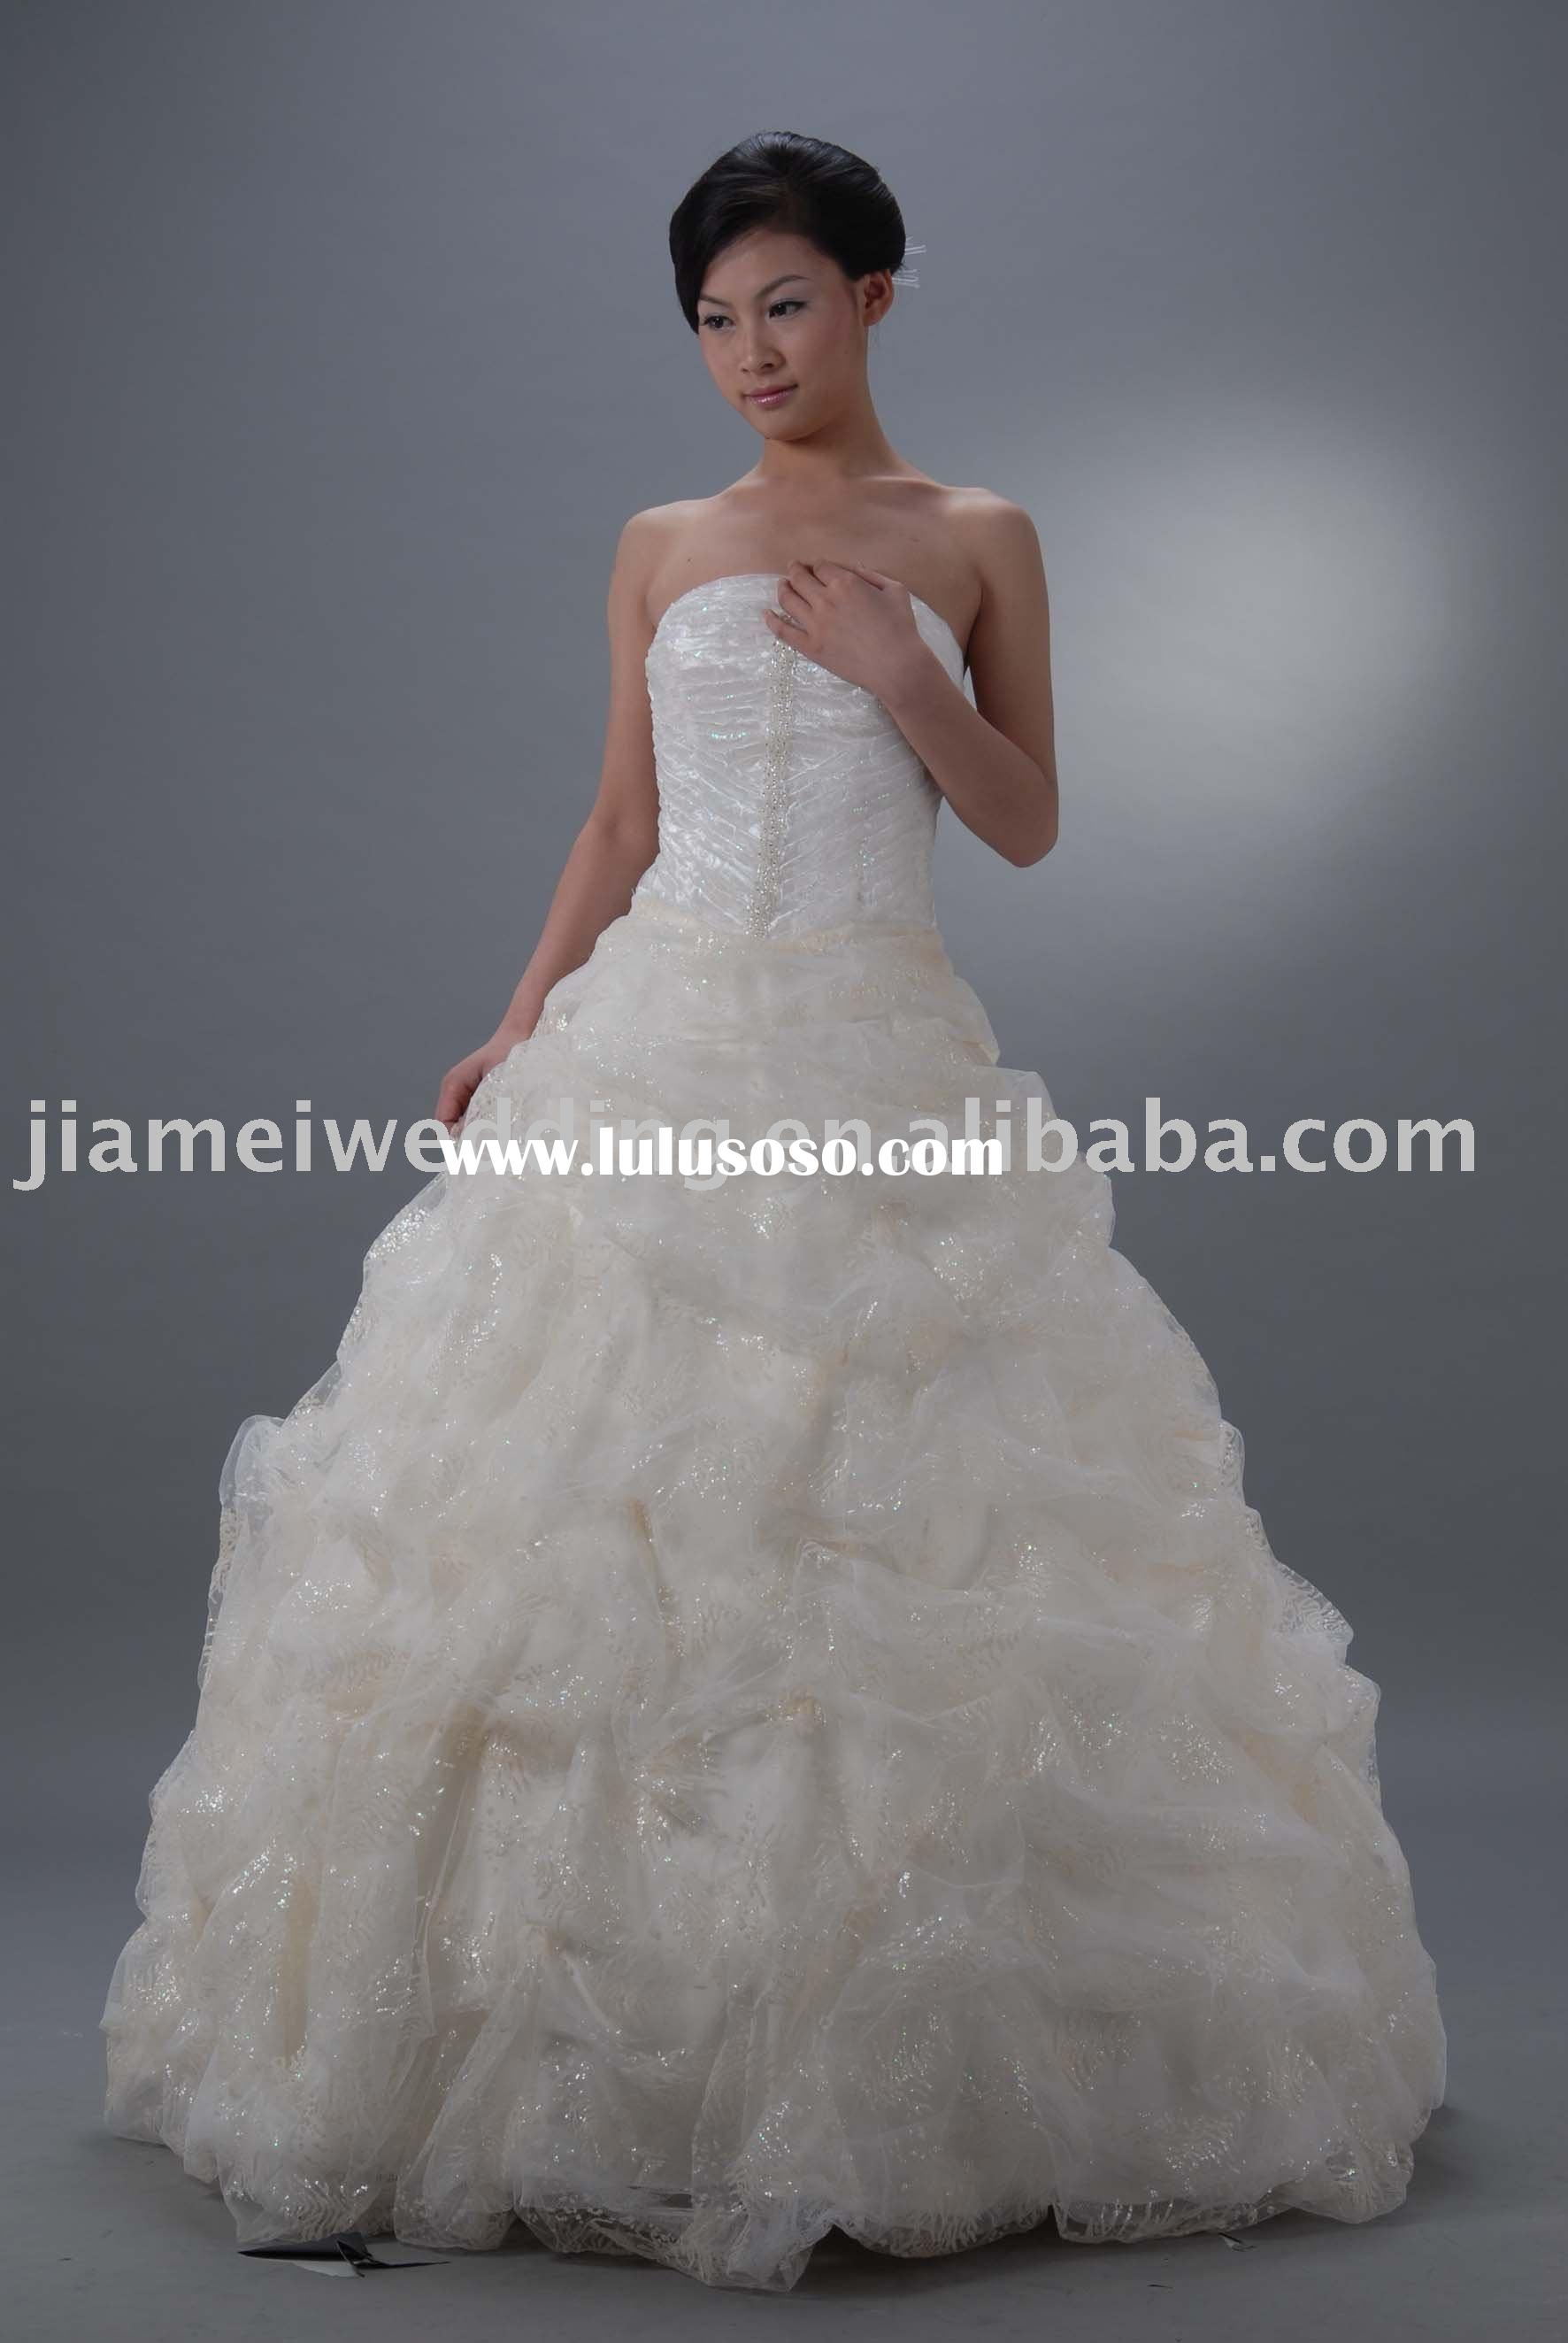 Wedding dress ball gown, new fashion